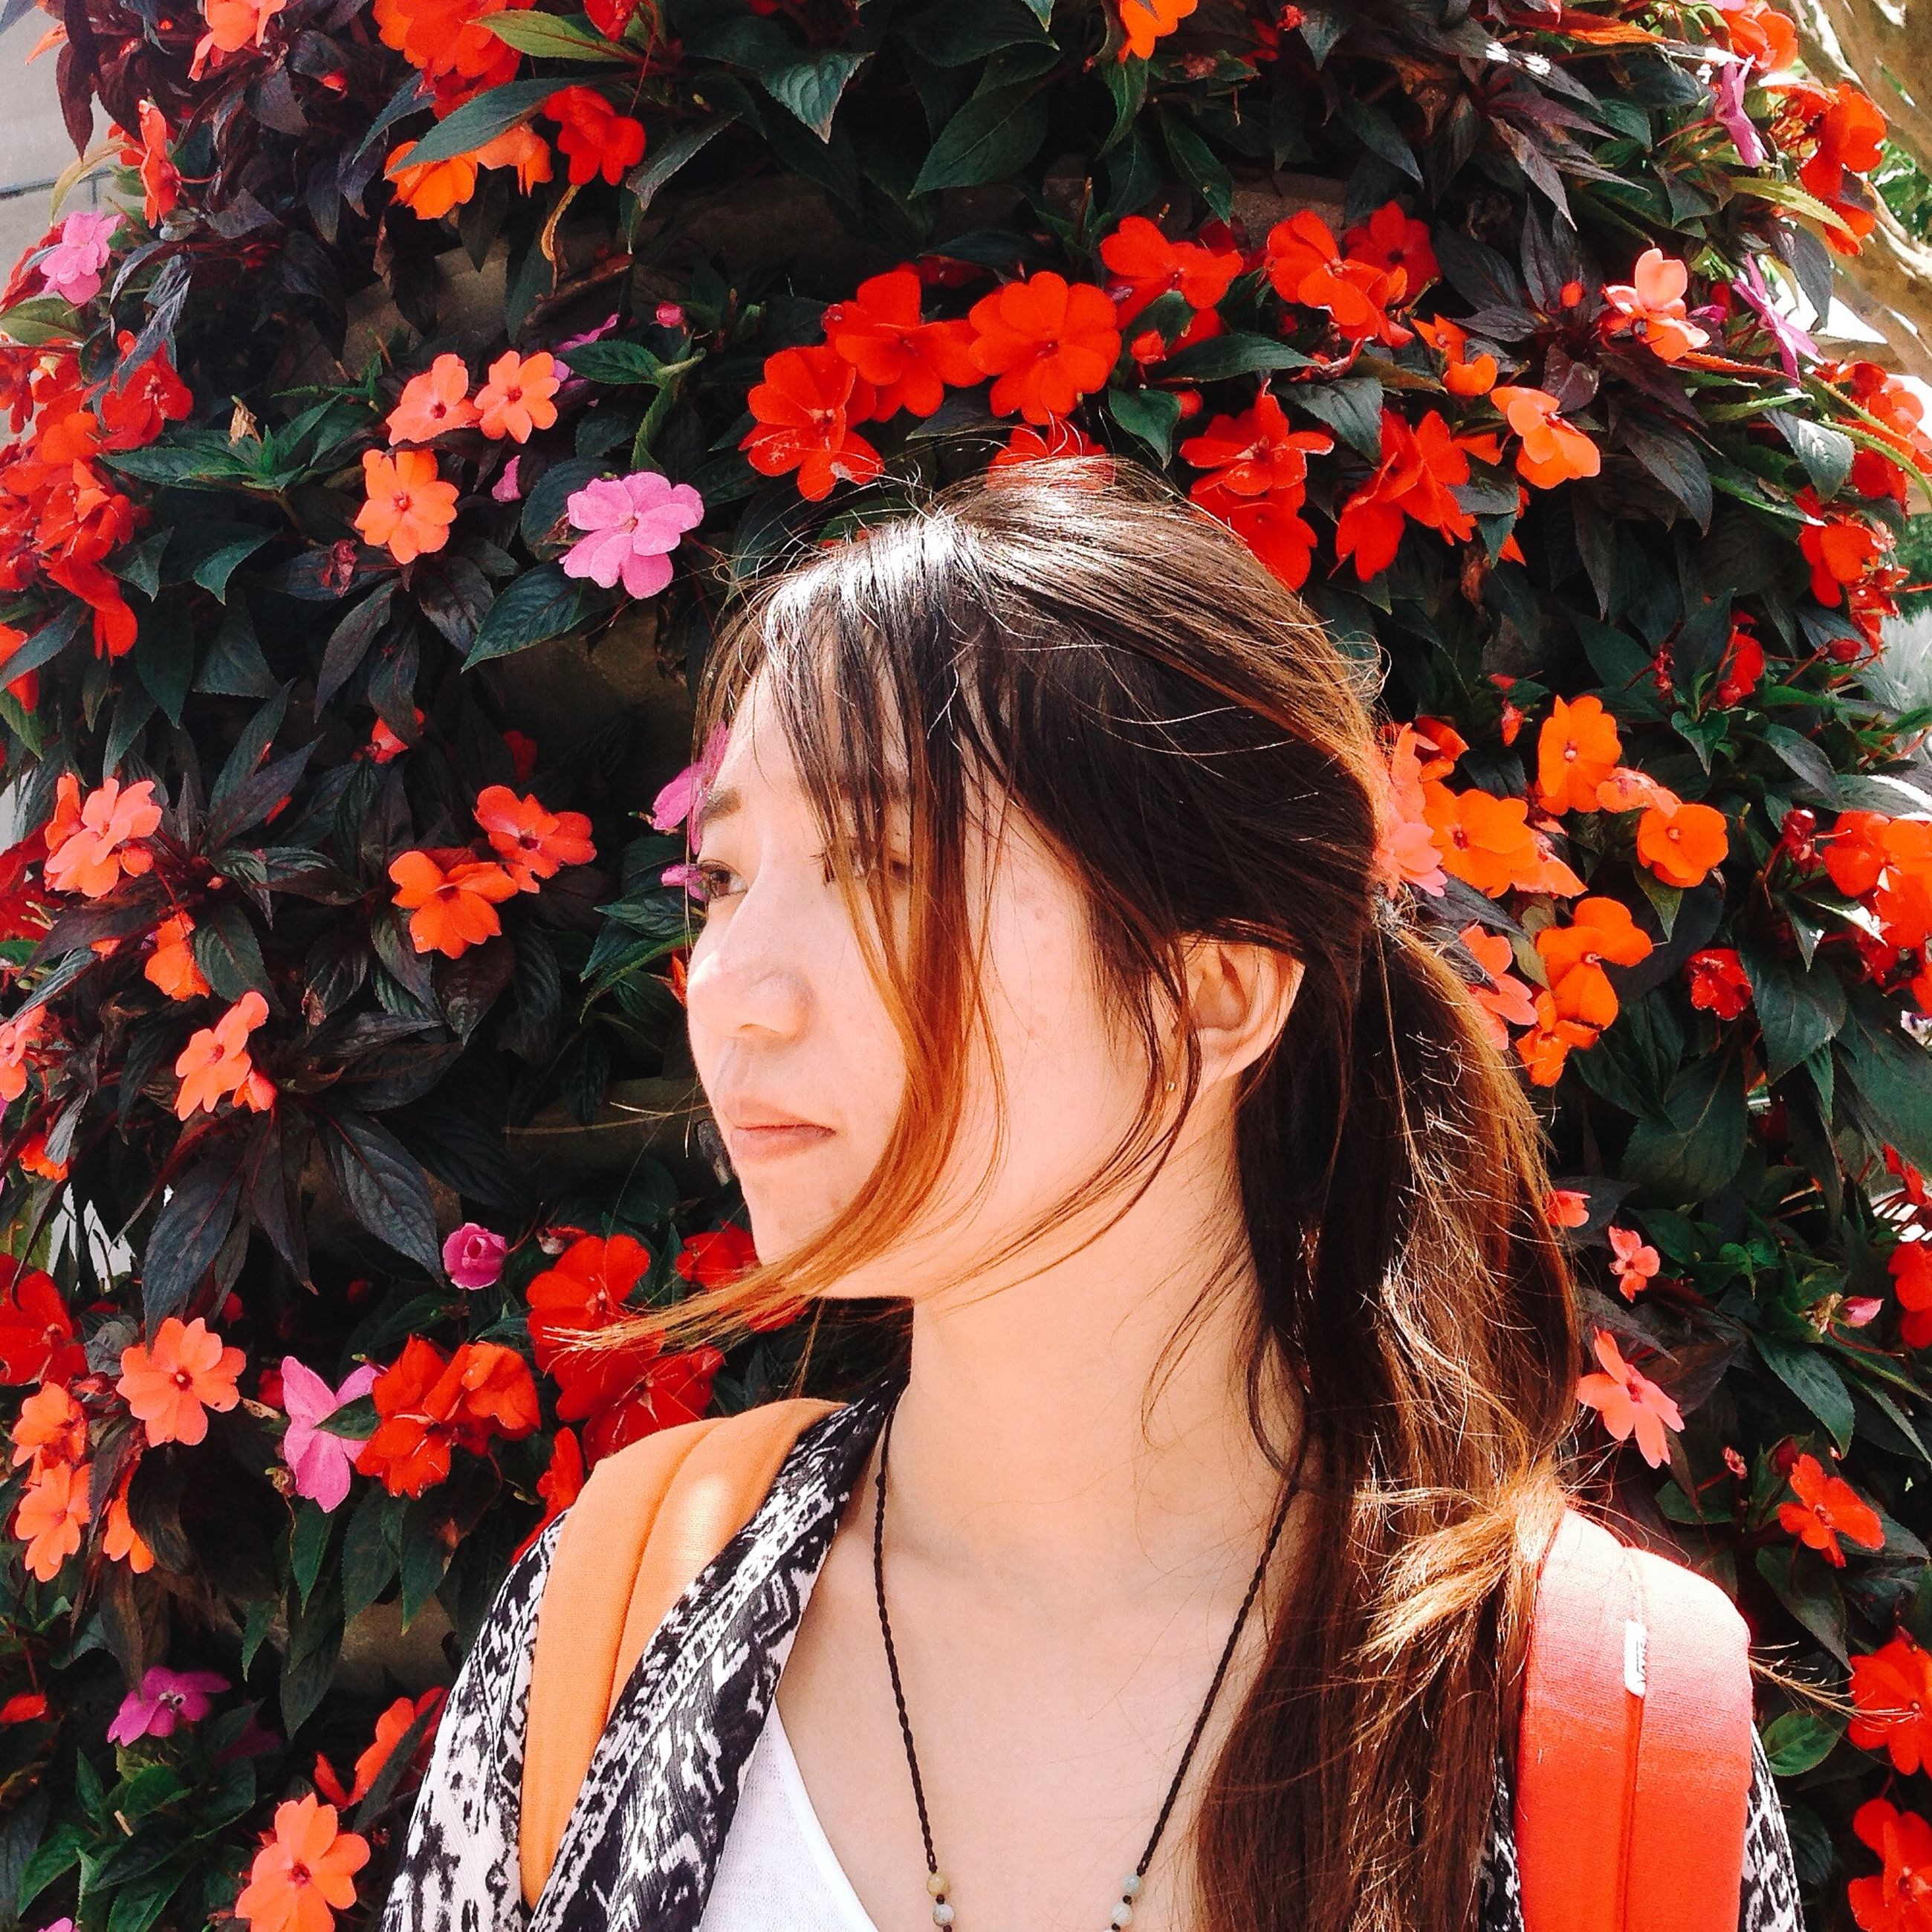 young adult, young women, person, long hair, lifestyles, leisure activity, looking at camera, headshot, portrait, casual clothing, front view, smiling, red, flower, brown hair, close-up, blond hair